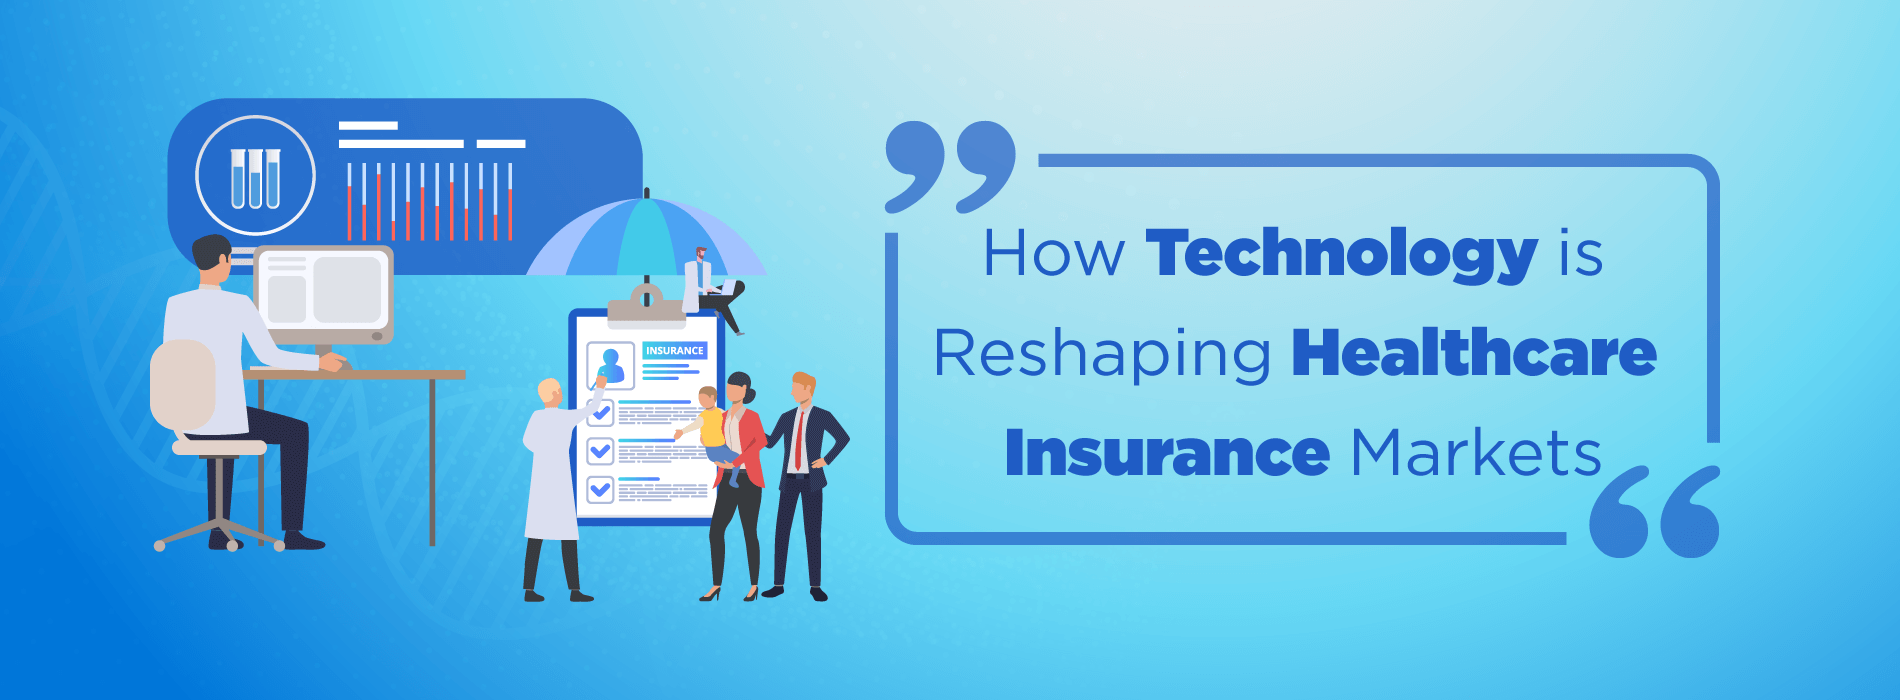 How Technology Is Reshaping Healthcare Insurance Markets